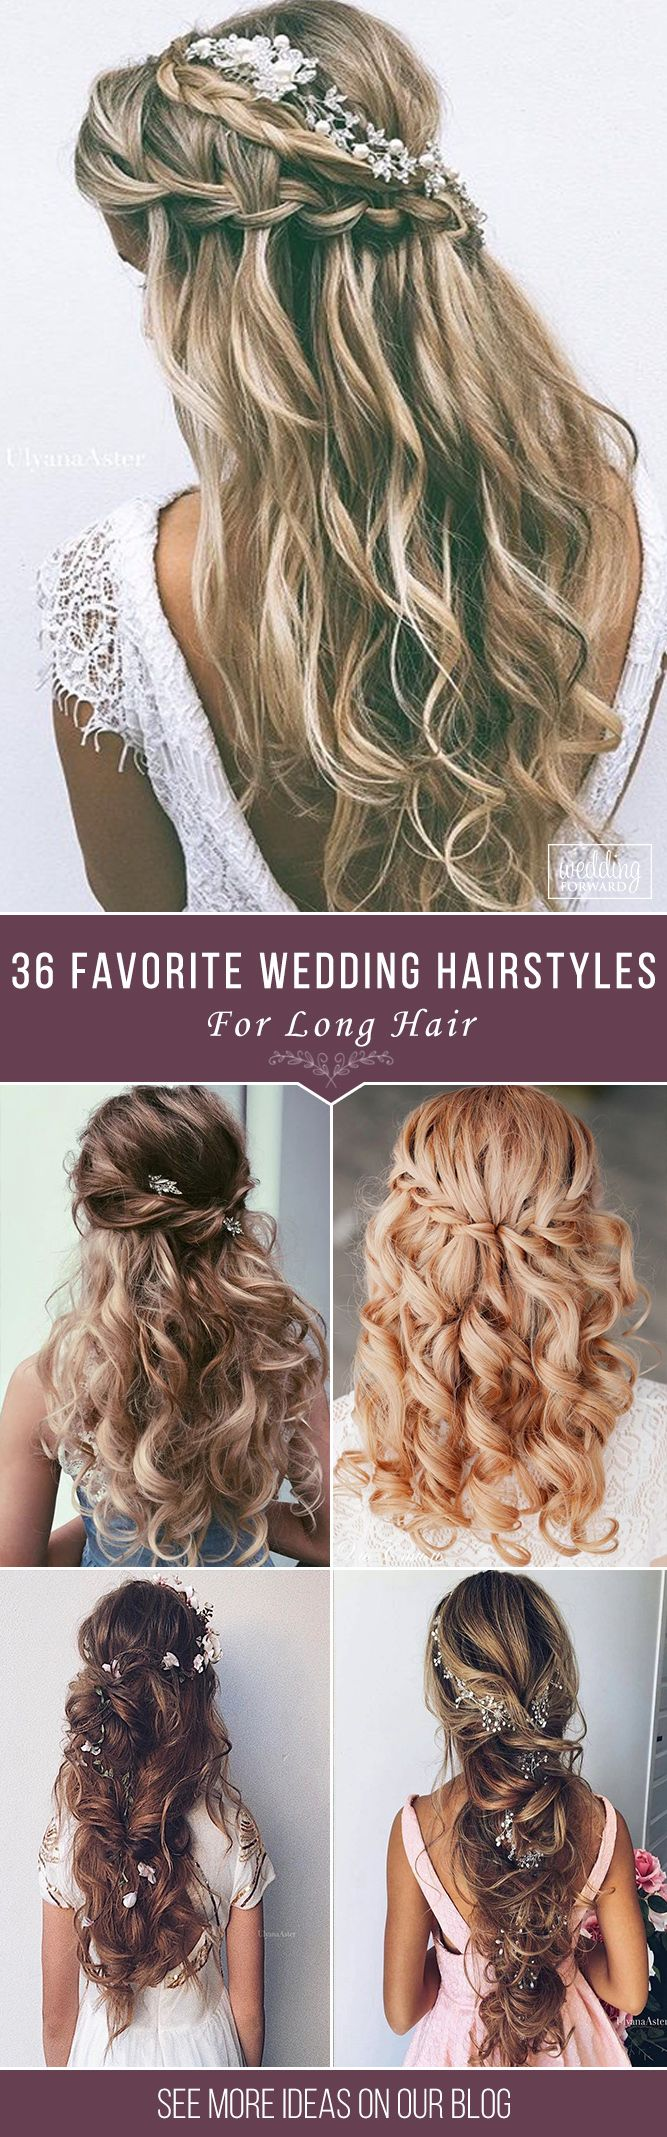 36 Our Favorite Wedding Hairstyles For Long Hair ❤ We make a list our favorite wedding hairstyles for long hair. Look through it and pick your perfect variant to become the most beautiful bride. See more: http://www.weddingforward.com/favorite-wedding-hairstyles-long-hair/ #weddings #hairstyles #updos